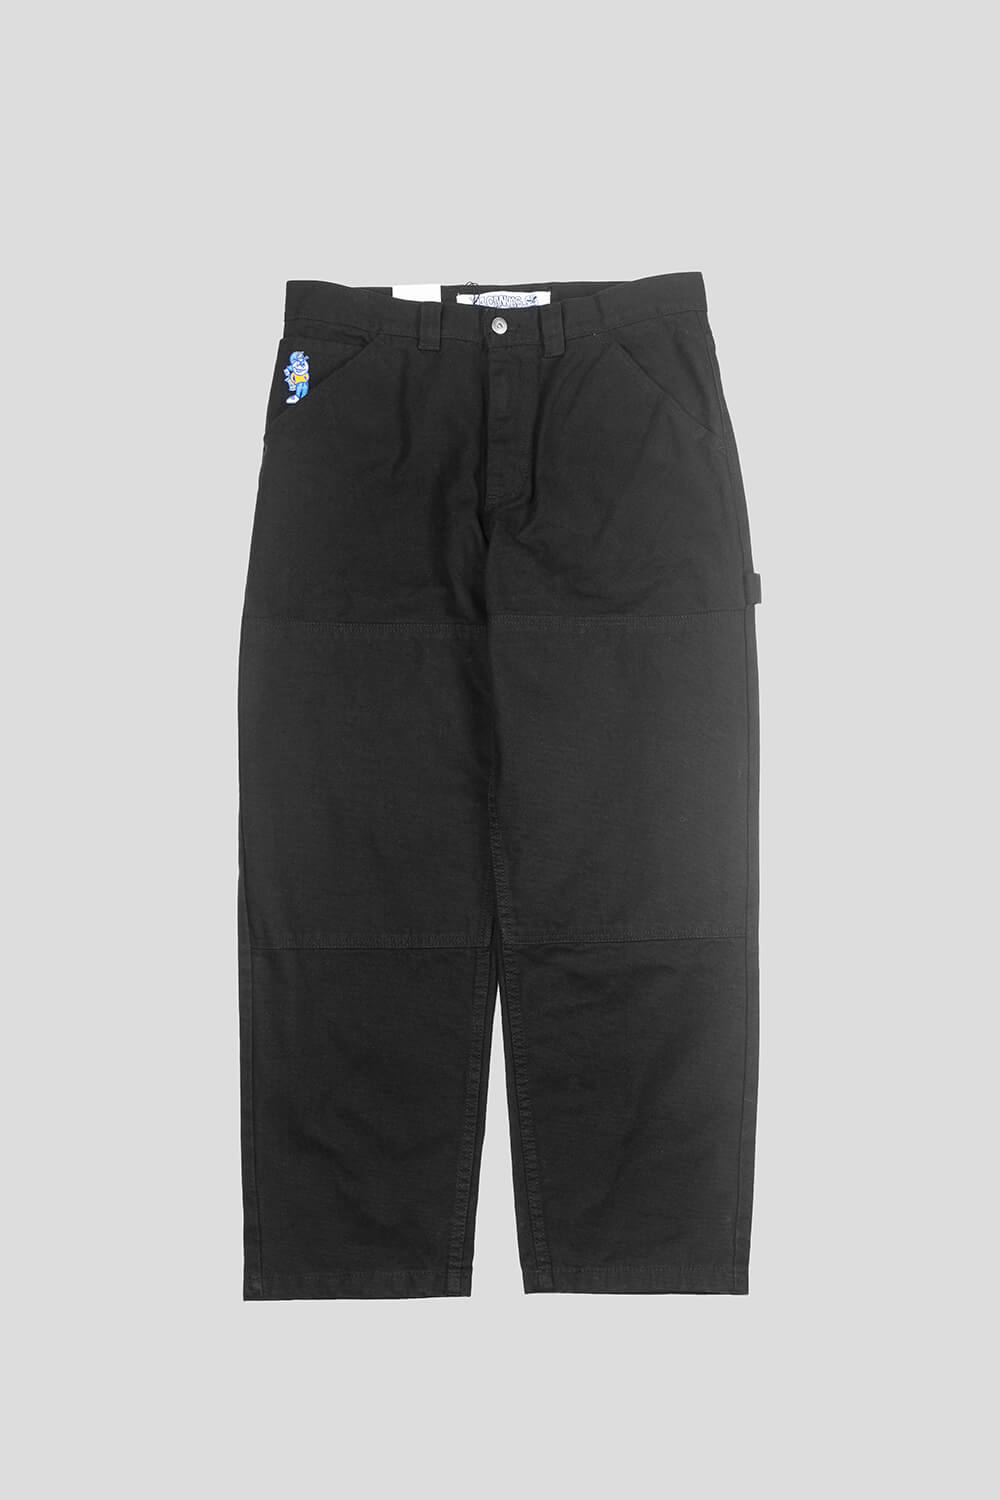 93 Canvas Pants